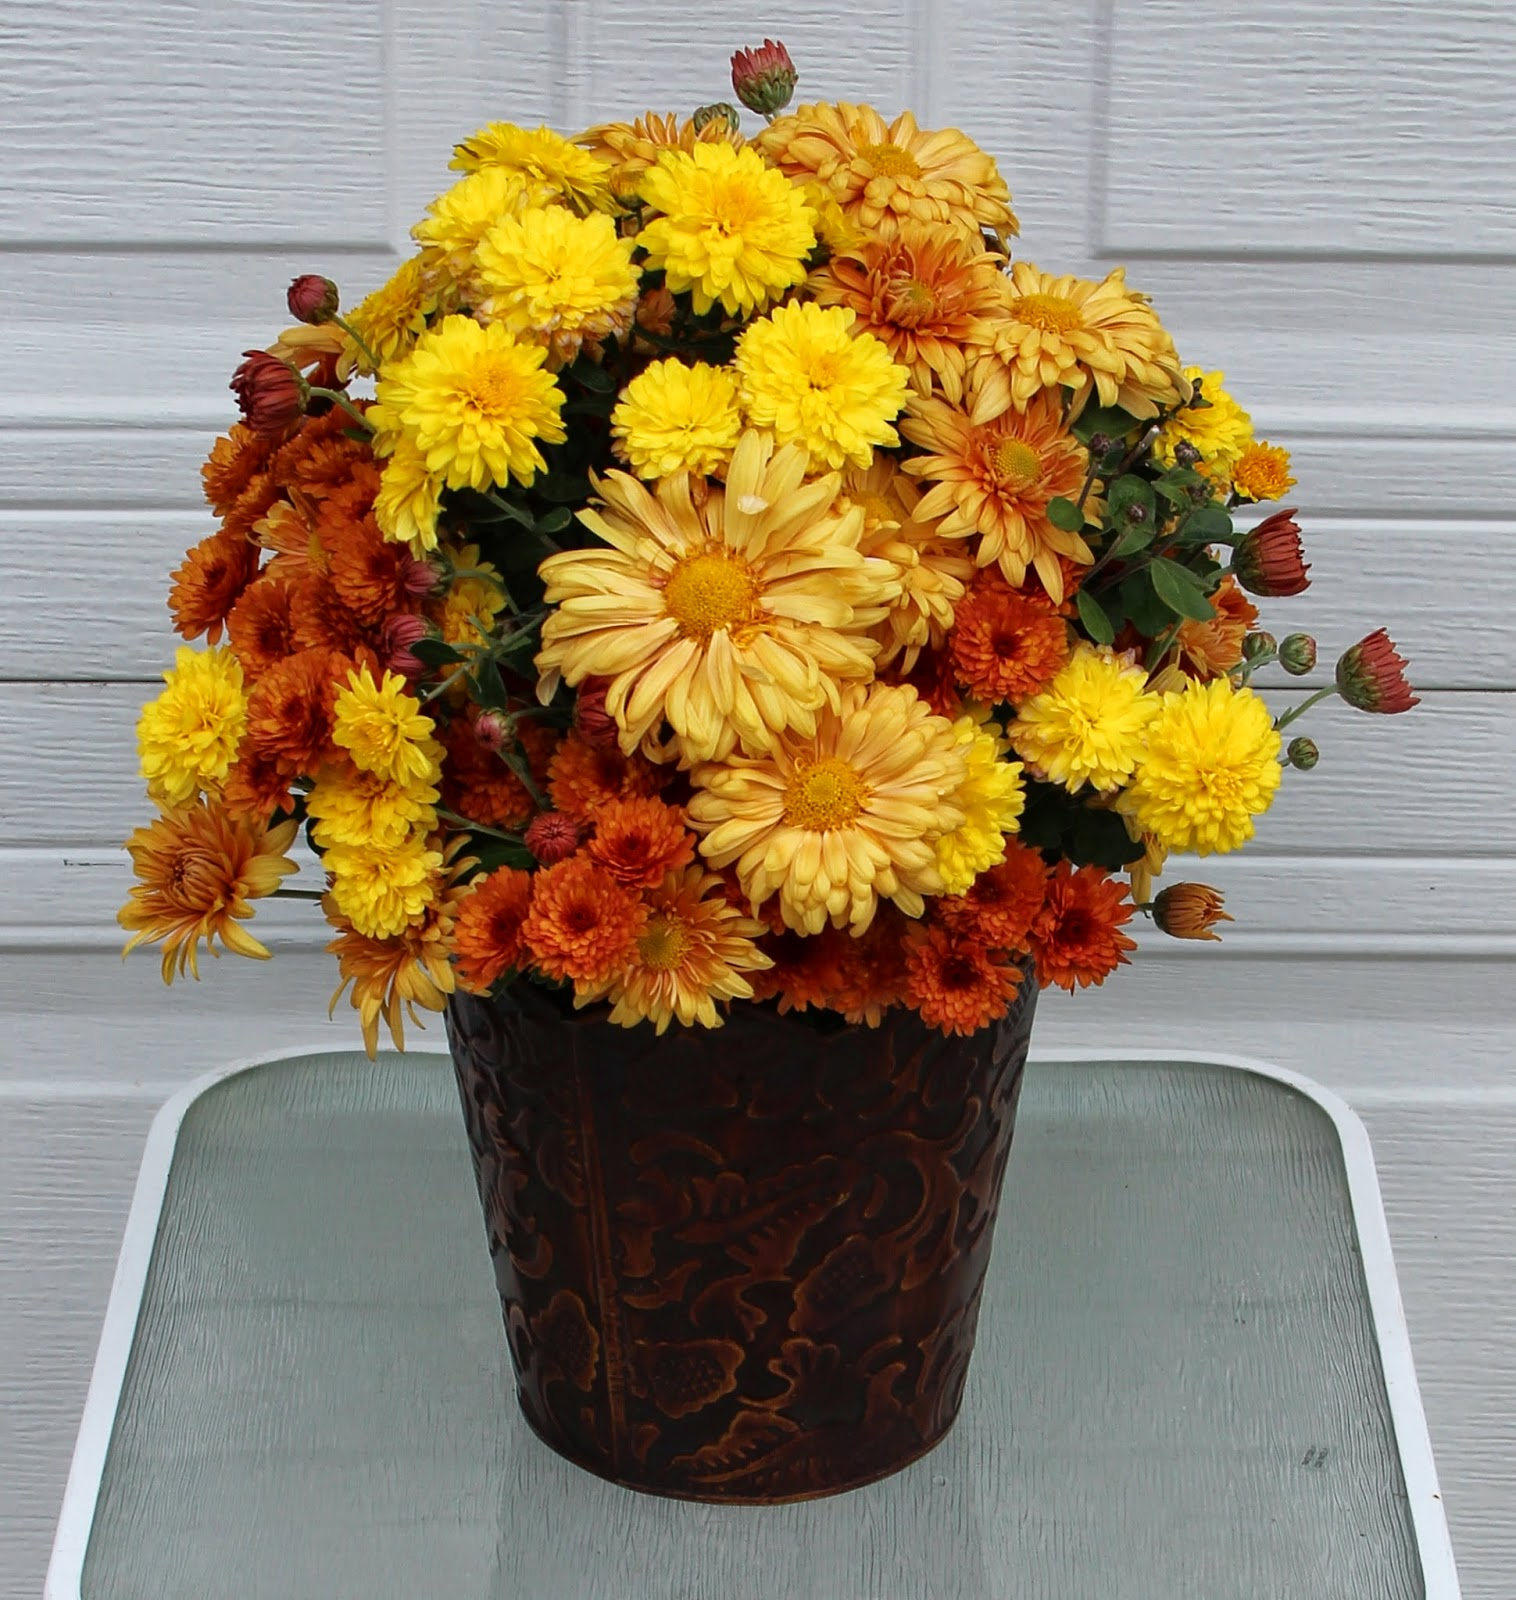 Fall Flower Mums: Using A Variety In Fall Arrangements